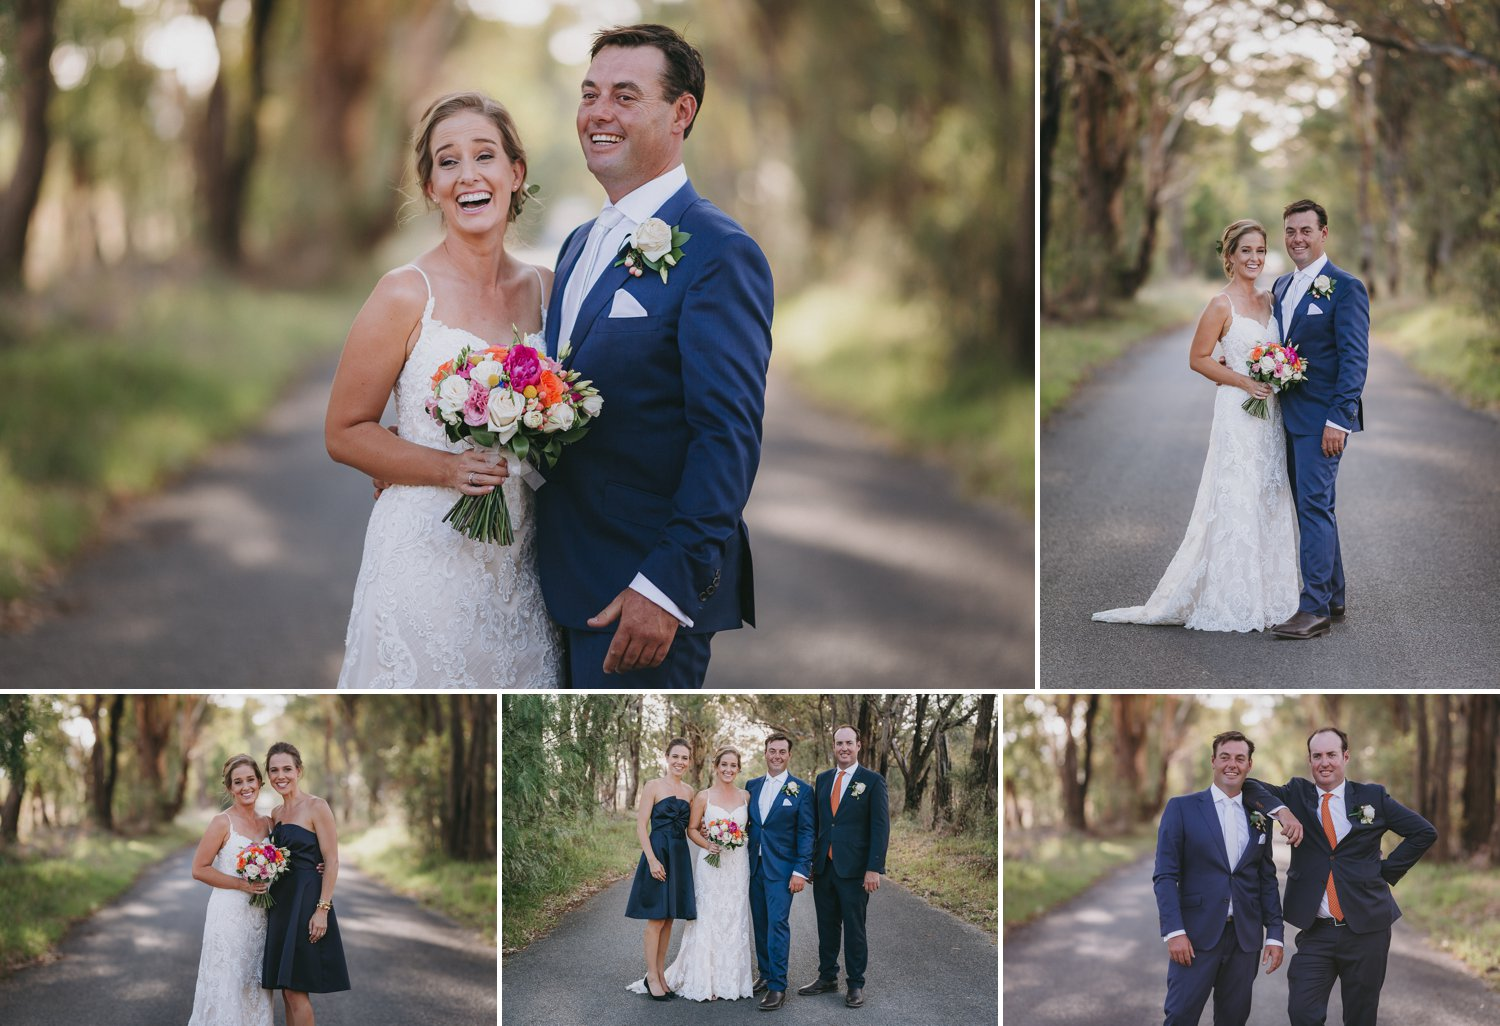 Vinegrove_Mudgee Weding Photography 21.jpg